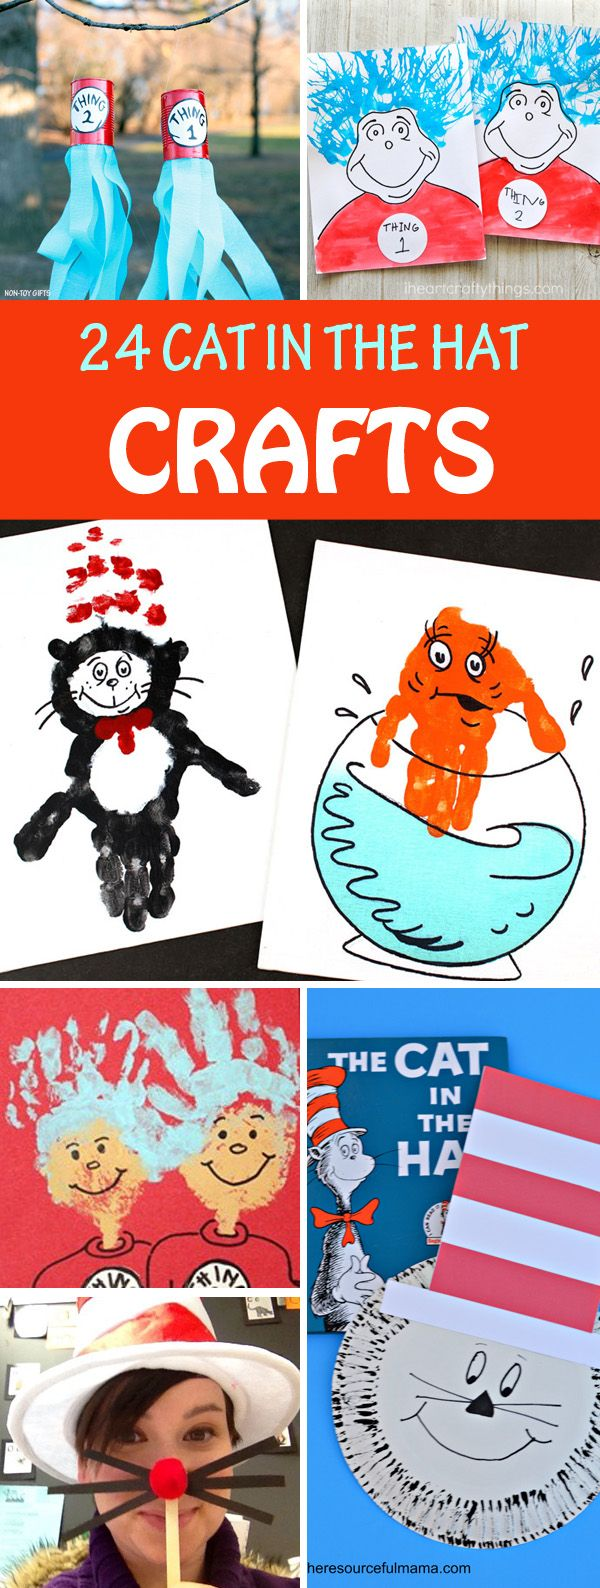 Cat in the Hat crafts to celebrate Dr Seuss birthday. Thing 1 and Thing 2 windsocks, handprints, puppets, Cat in the Hat mask, whiskers and more #drseuss #catinthehat #Thing1andThing2